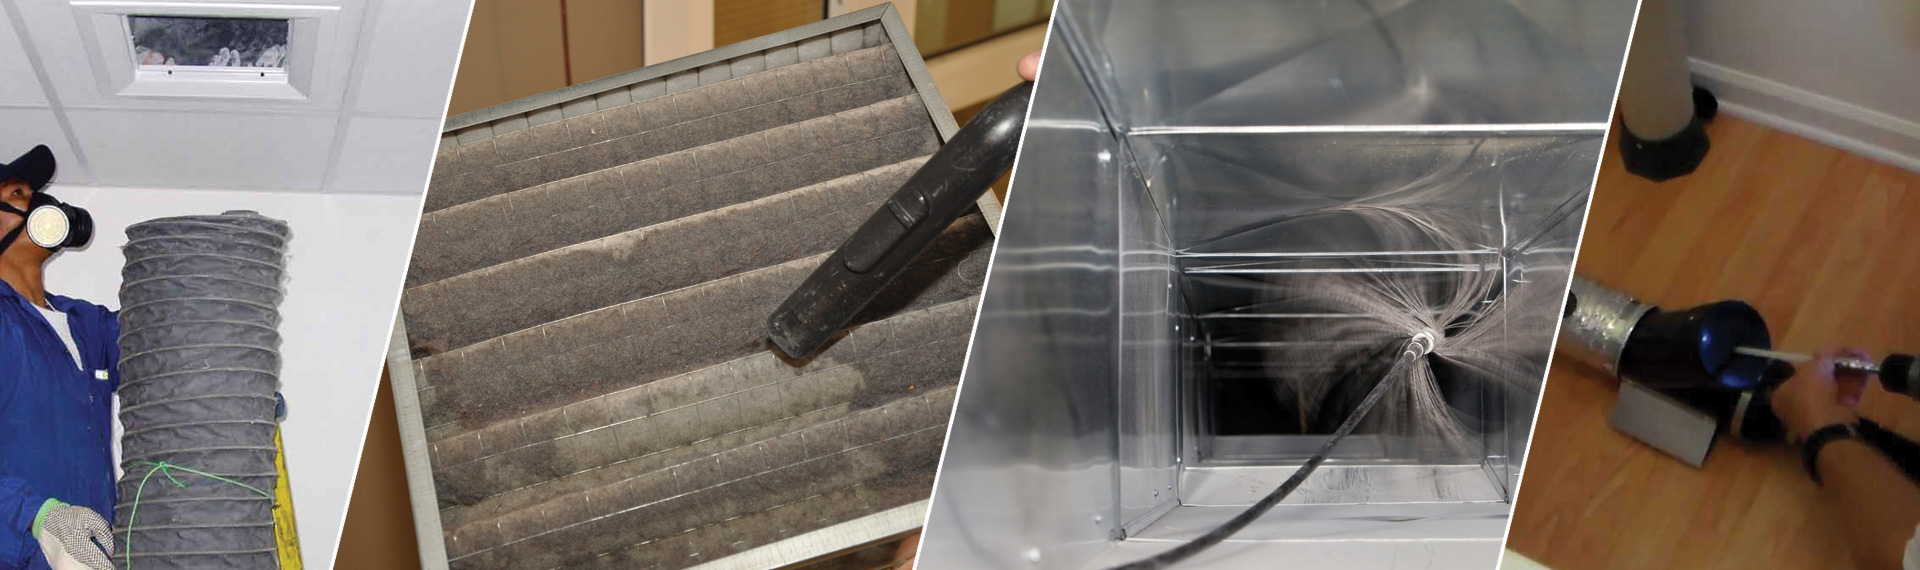 Reliable Air Duct Cleaning Topanga CA